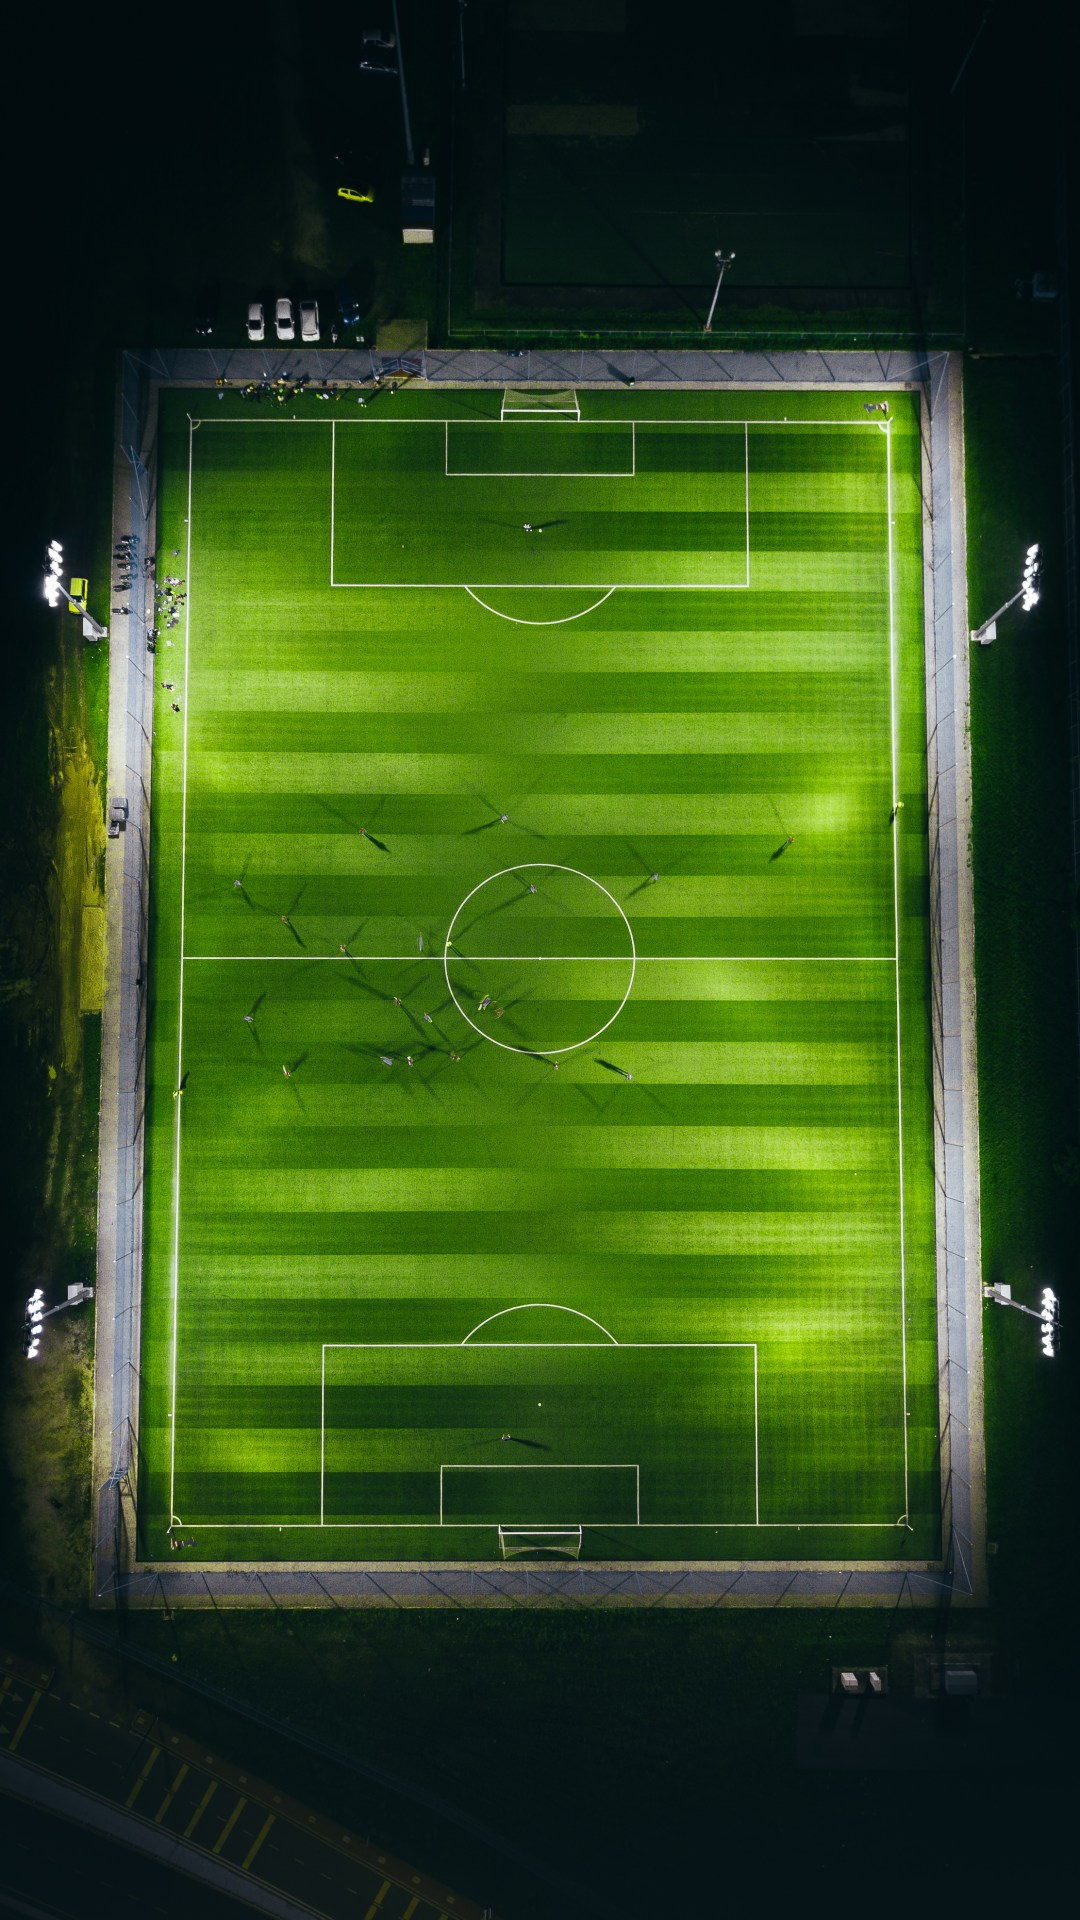 Football Pictures   Download Free Images on Unsplash